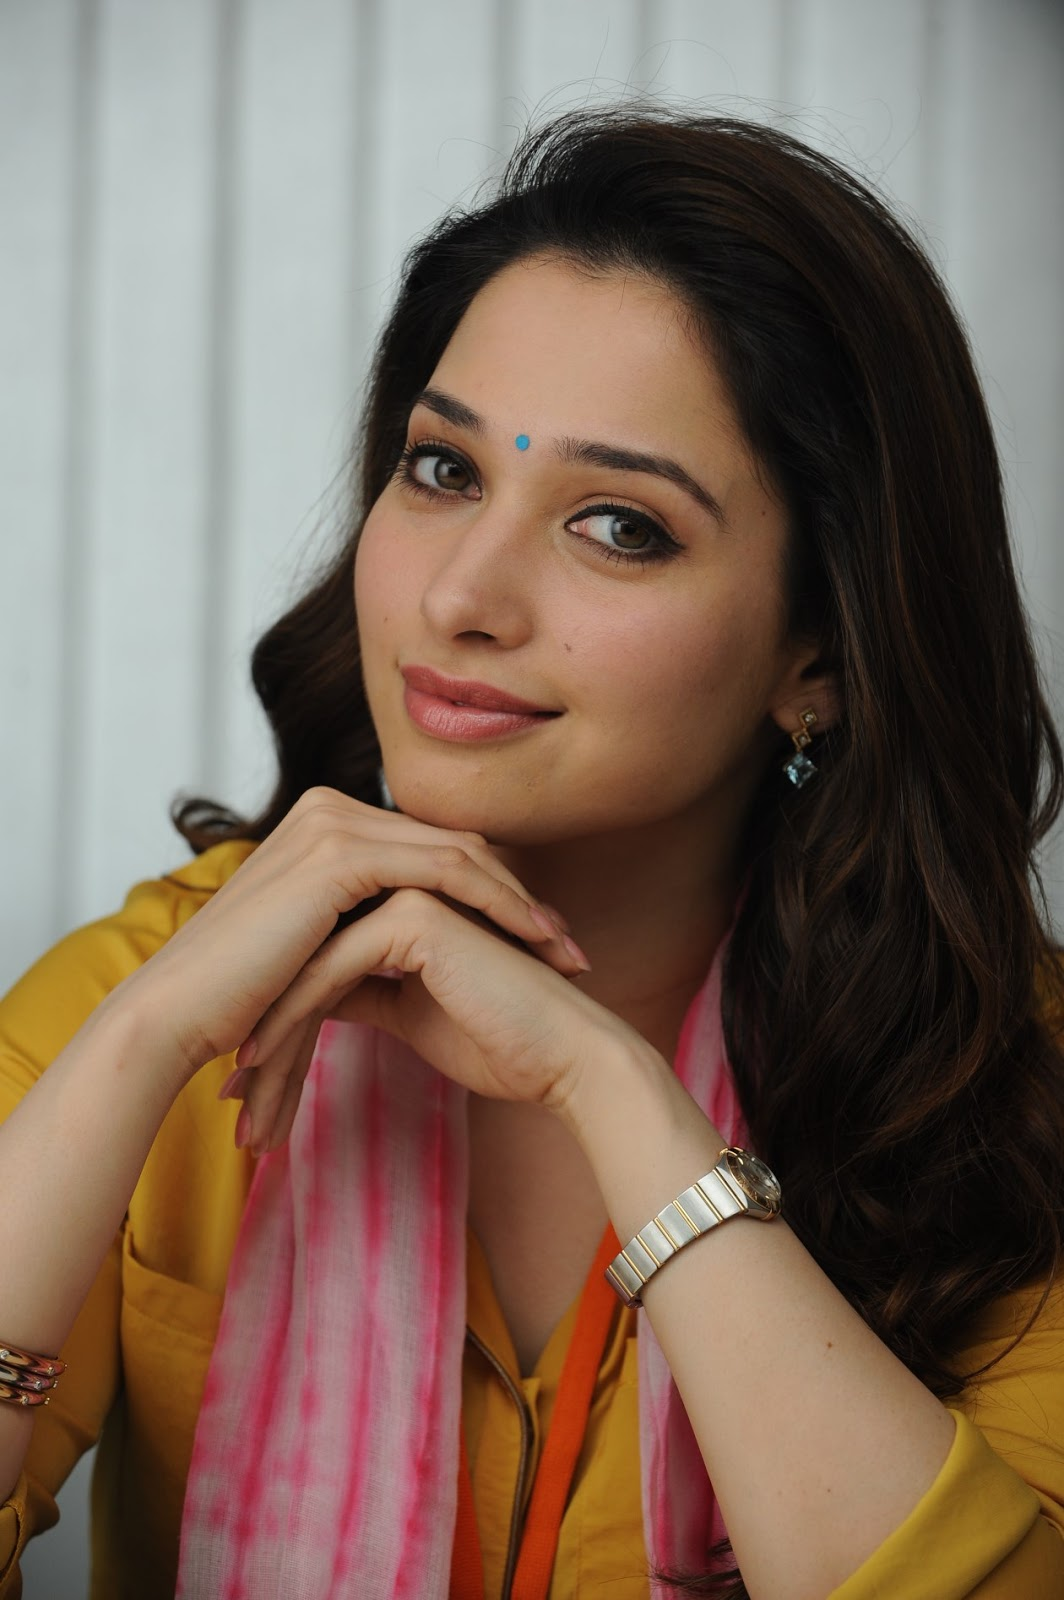 tamanna wallpapers: tamanna bhatia looks stunning in movie vsop with